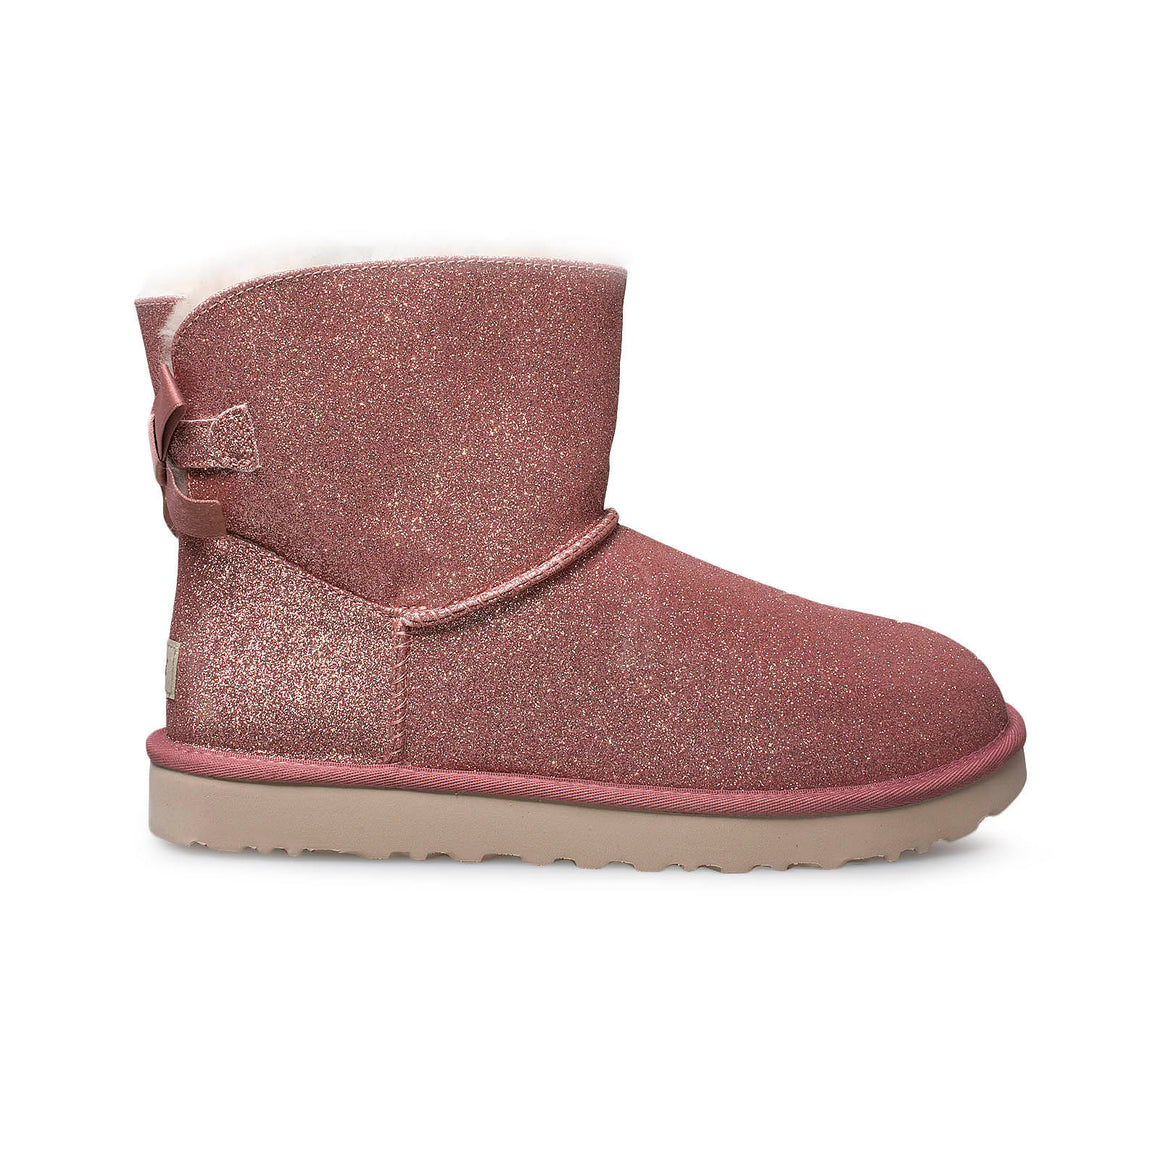 UGG Mini Bailey Bow Sparkle Pink Boots - Women's